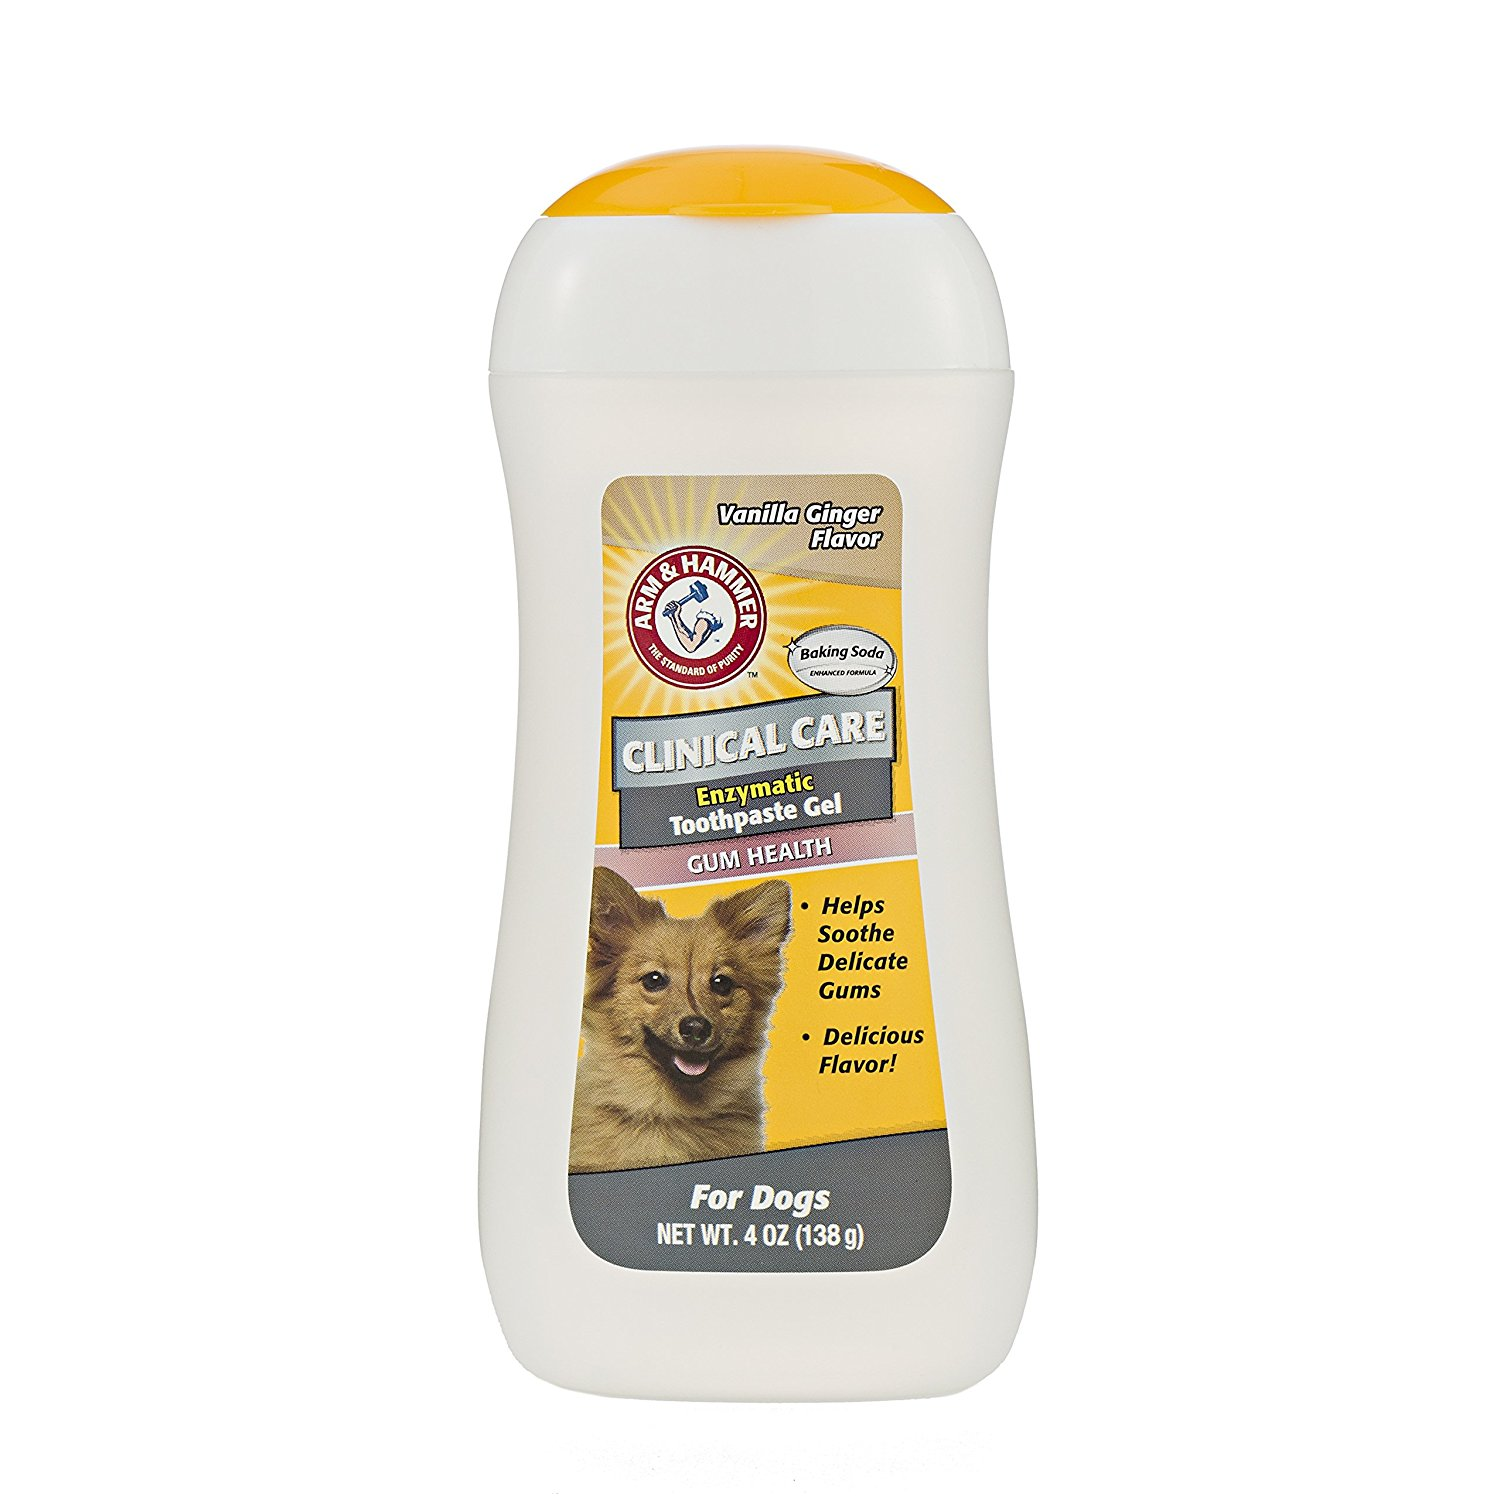 Arm & Hammer Clinical Care Enzymatic Toothpaste Gel